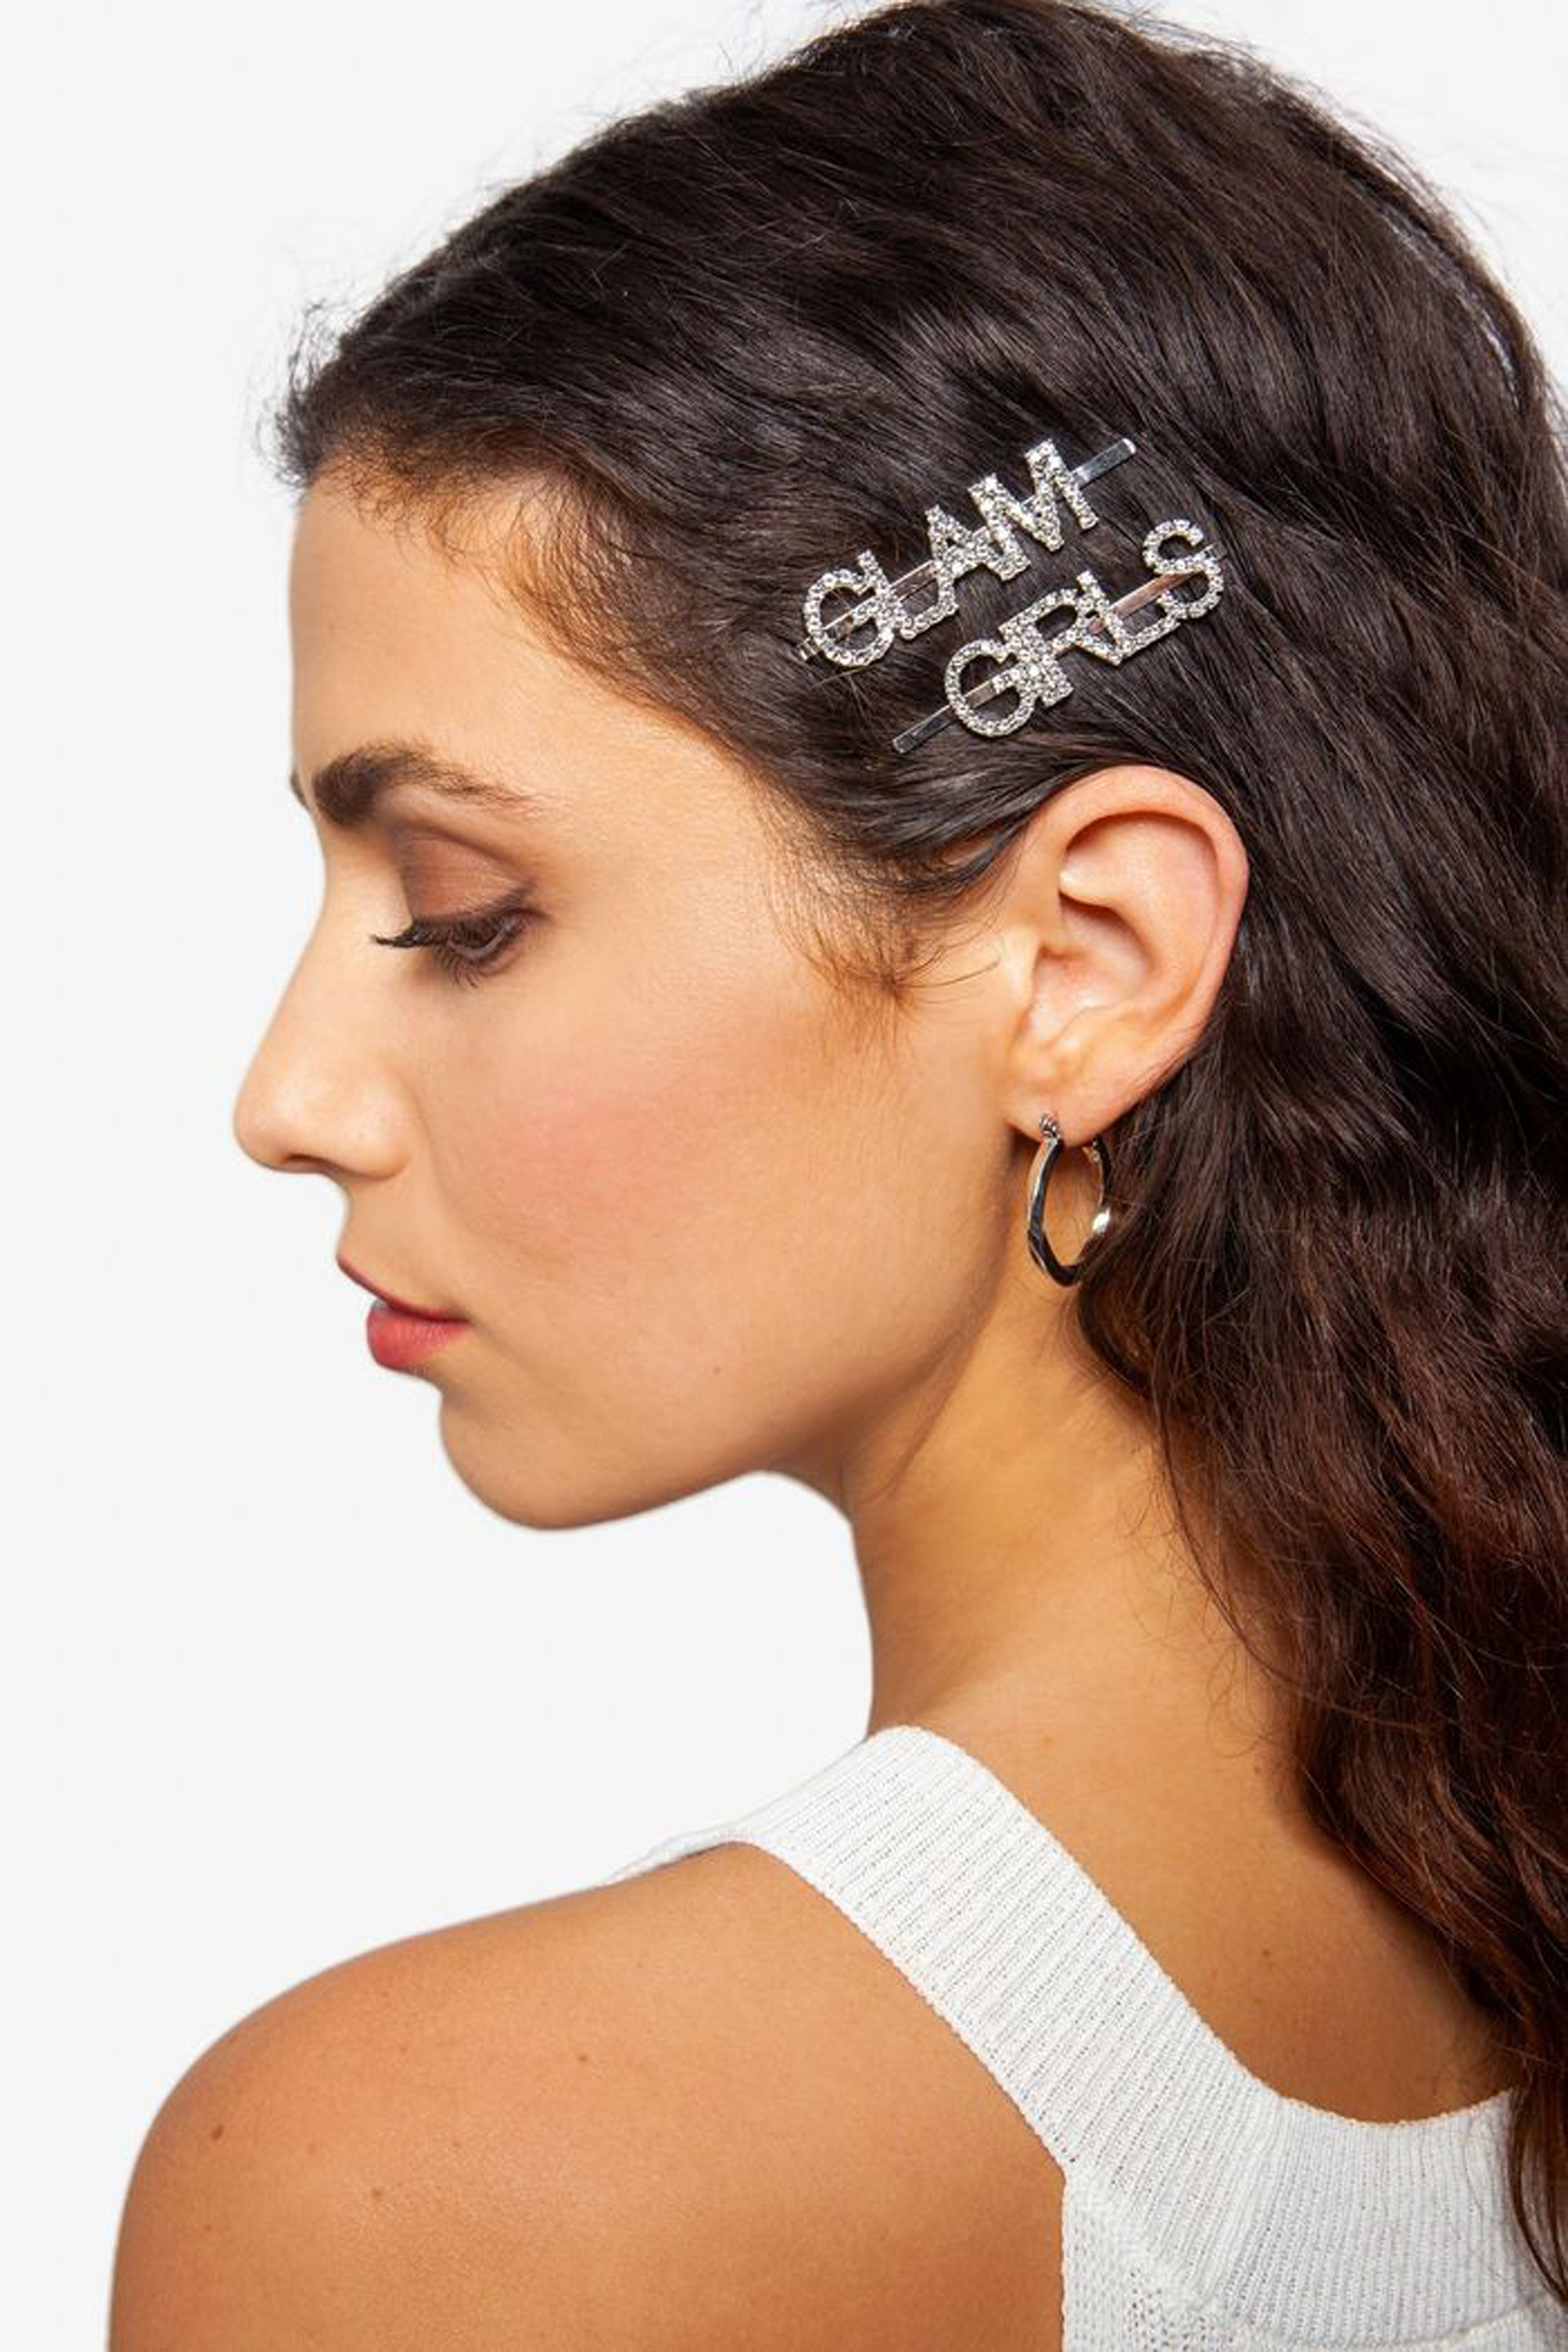 Topshop Glam Girl Crystal Hair Slides